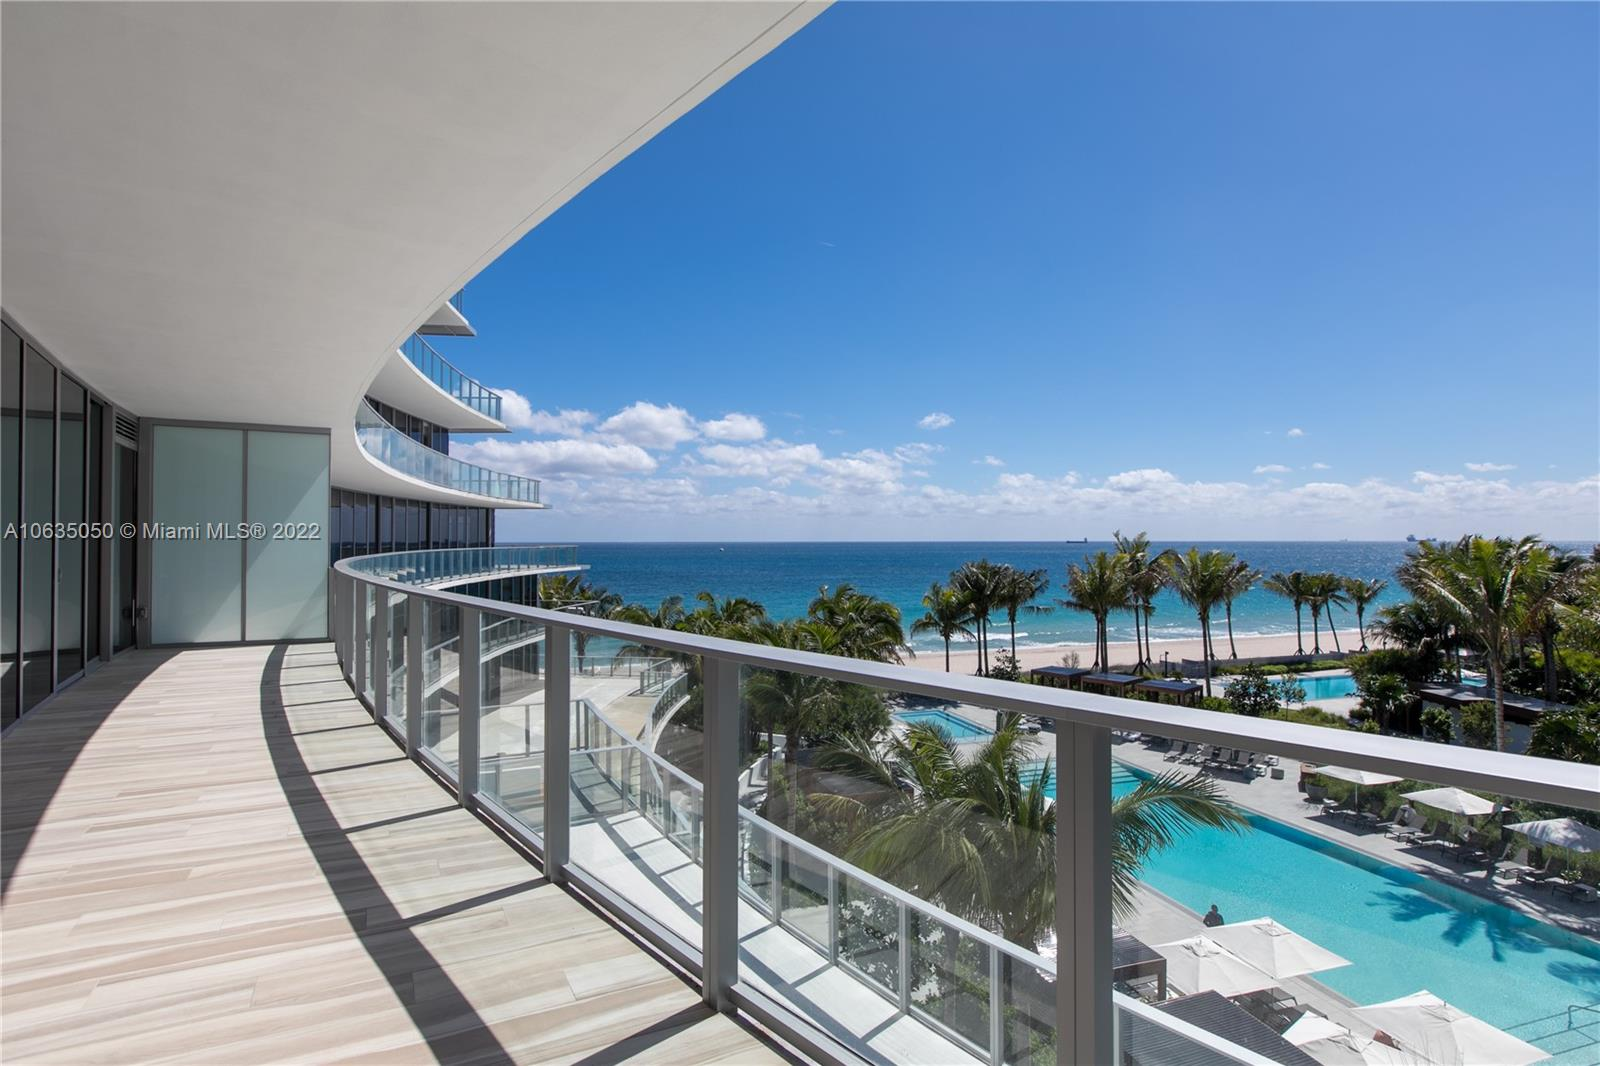 ENJOY PANORAMIC OCEAN VIEWS from this unique & fully turn-key 2 Bedroom   2.5 Bath  exclusive residence with private foyer entrance. Custom design finishes include lighting, porcelain flooring, motorized shades, blackouts in bedrooms,  finished closets, architectural elements, linear diffusers, Italkraft white and espresso cabinetry, Sub Zero and Wolf appliances including Wolf gas stove & coffee/cappuccino maker, Sub-zero wine cooler. This residence has one of the most sought after floor plans maximizing space, privacy and flow. Professionally designed with  Italian furnishings to bestow an elegant and minimalistic style. Perfectly located on 450 Ft. of Atlantic Ocean beachfront.